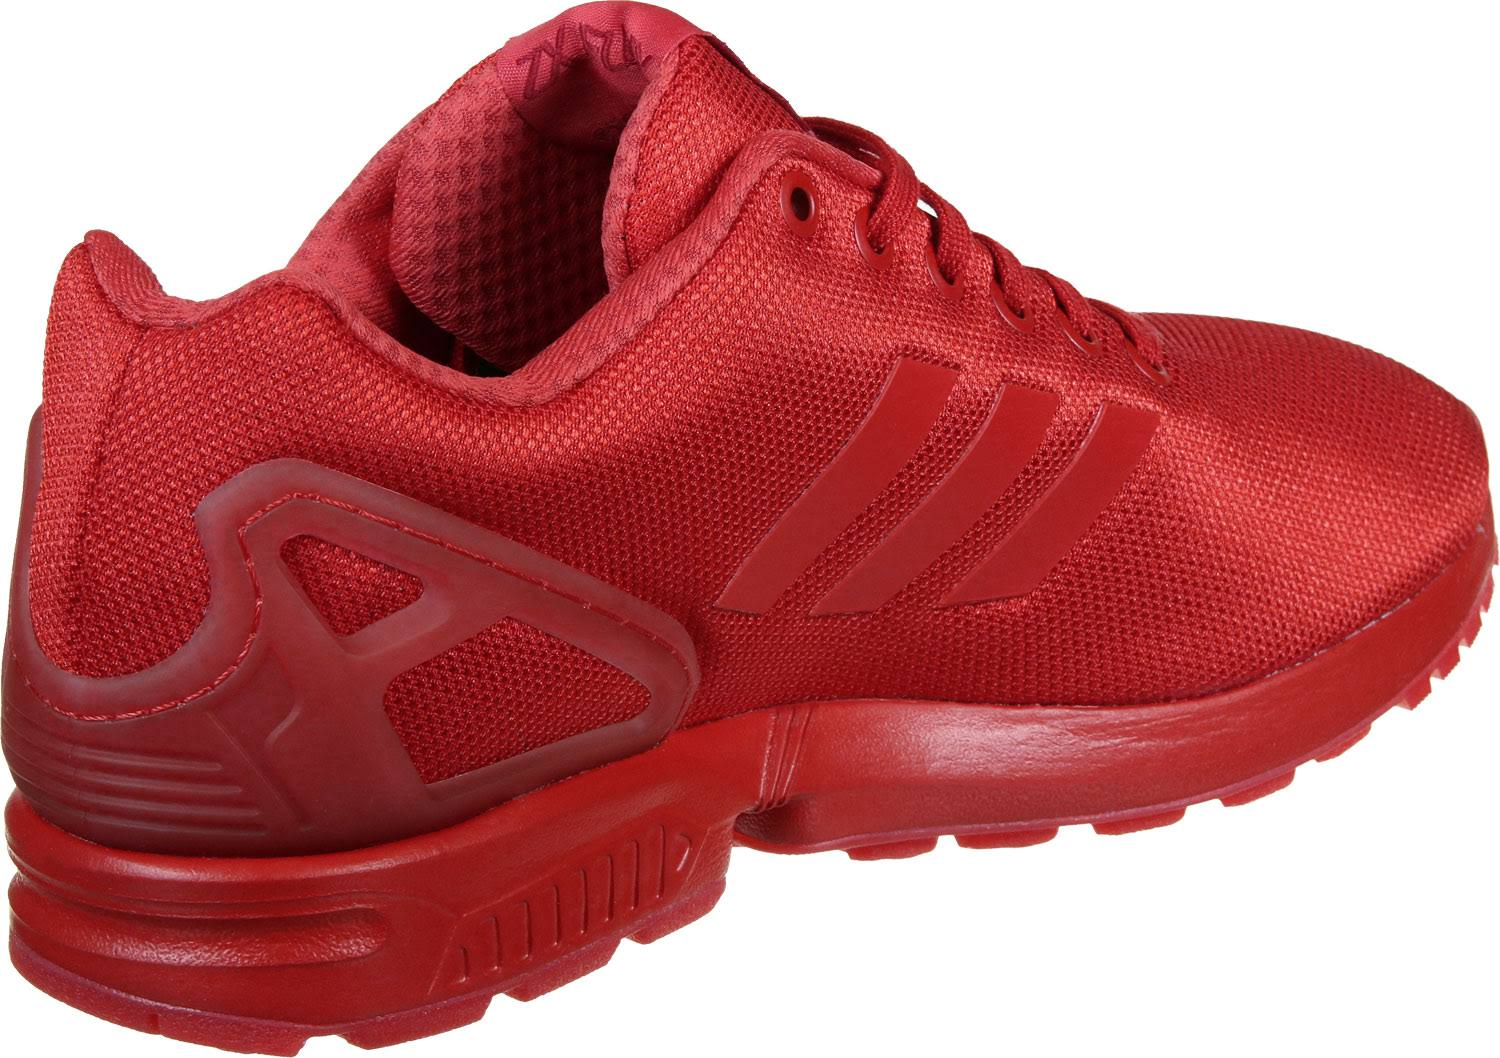 Adidas Originals ZX Flux Red